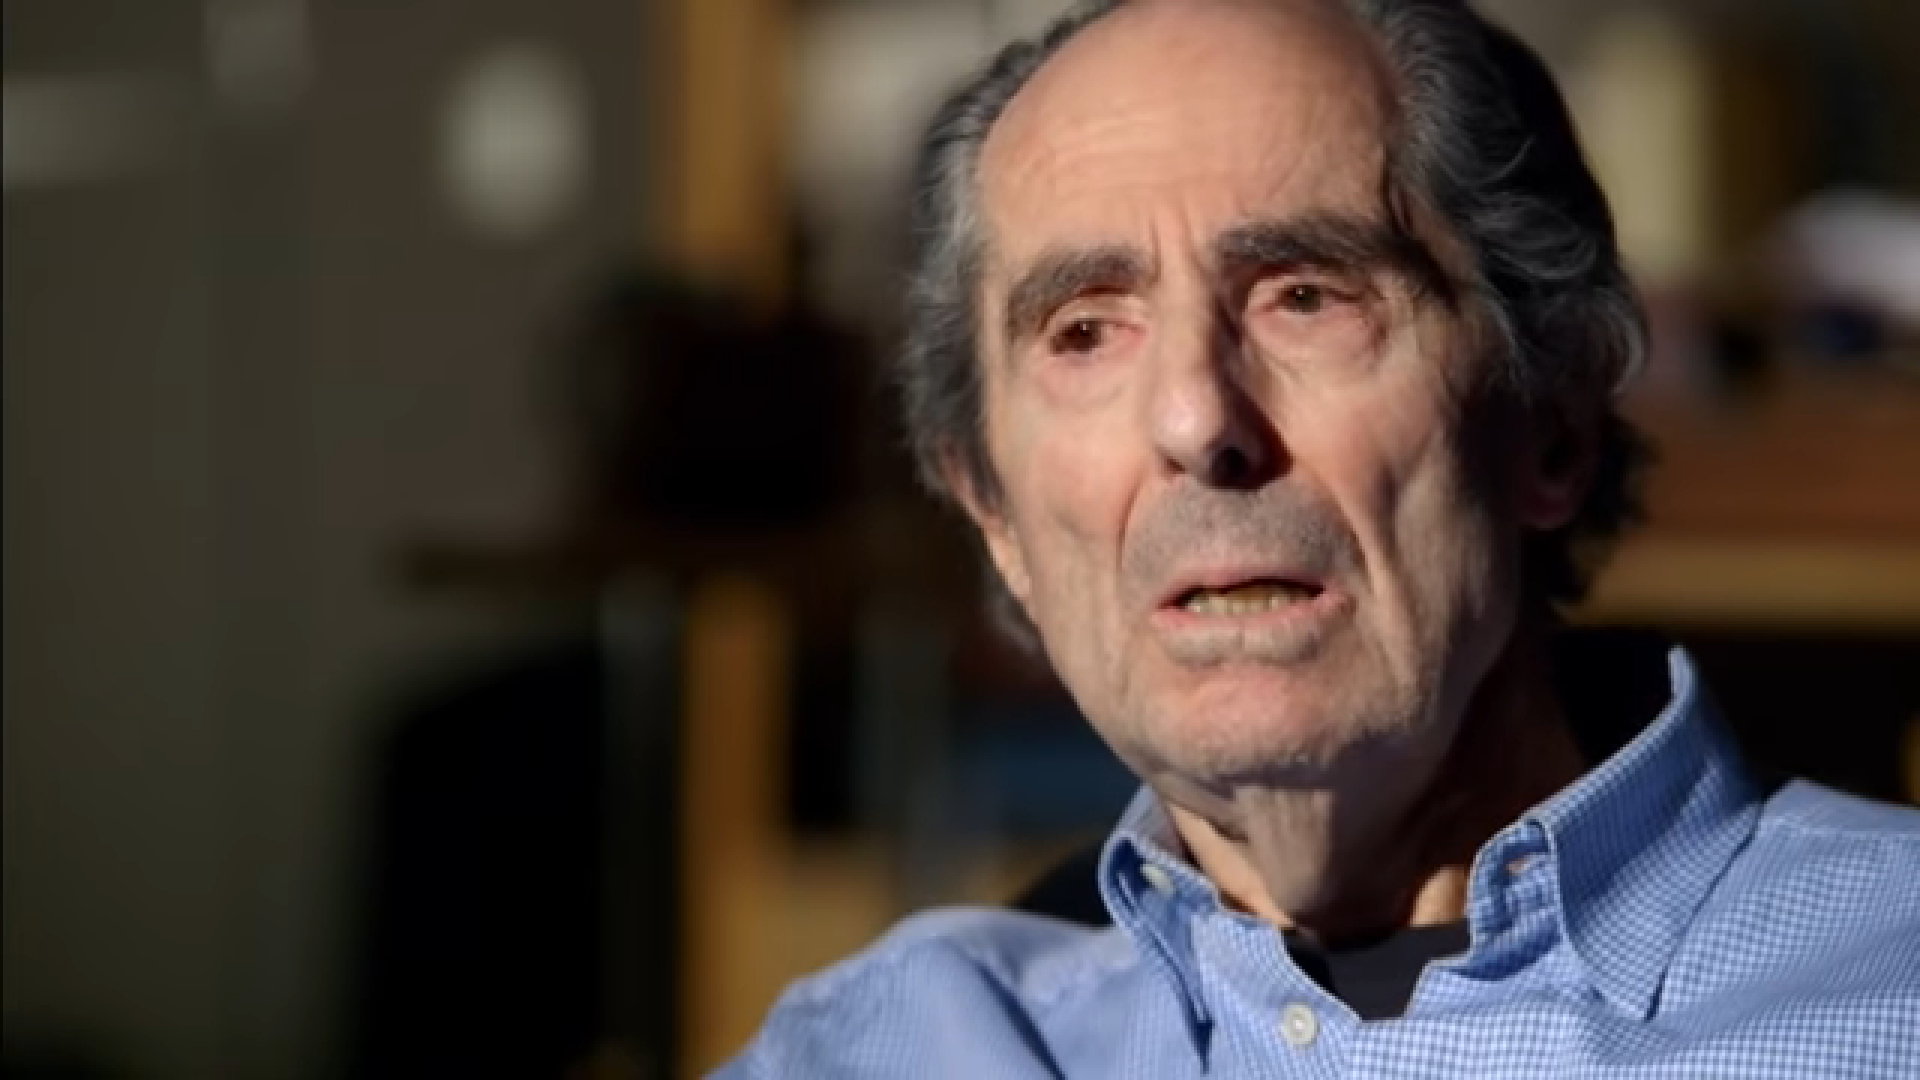 Philip Roth interview: 'I don't want to be caged in by reality'